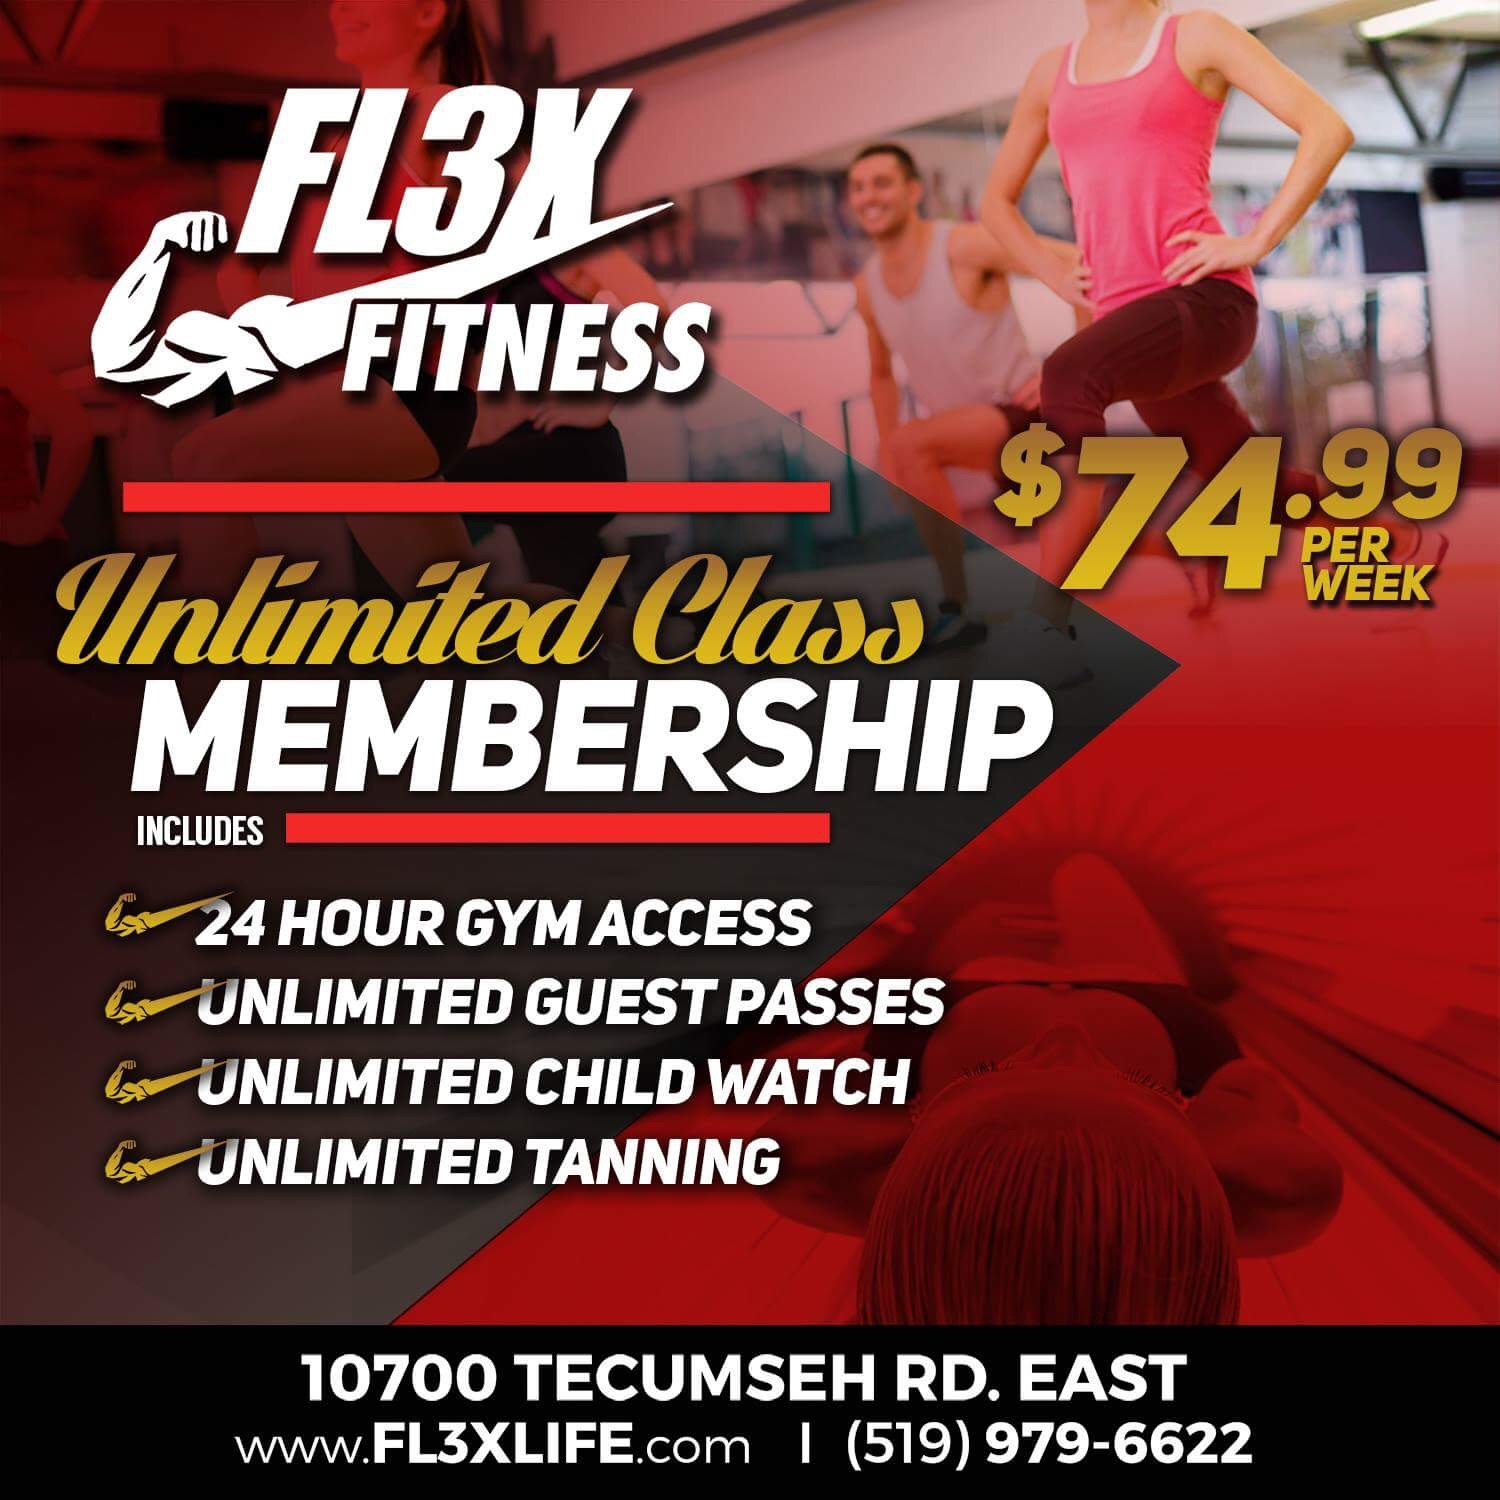 Unlimited Class Membership - $74.99 - Includes 24 hour gym access, unlimited guest passes, unlimited child watch, unlimited tanning